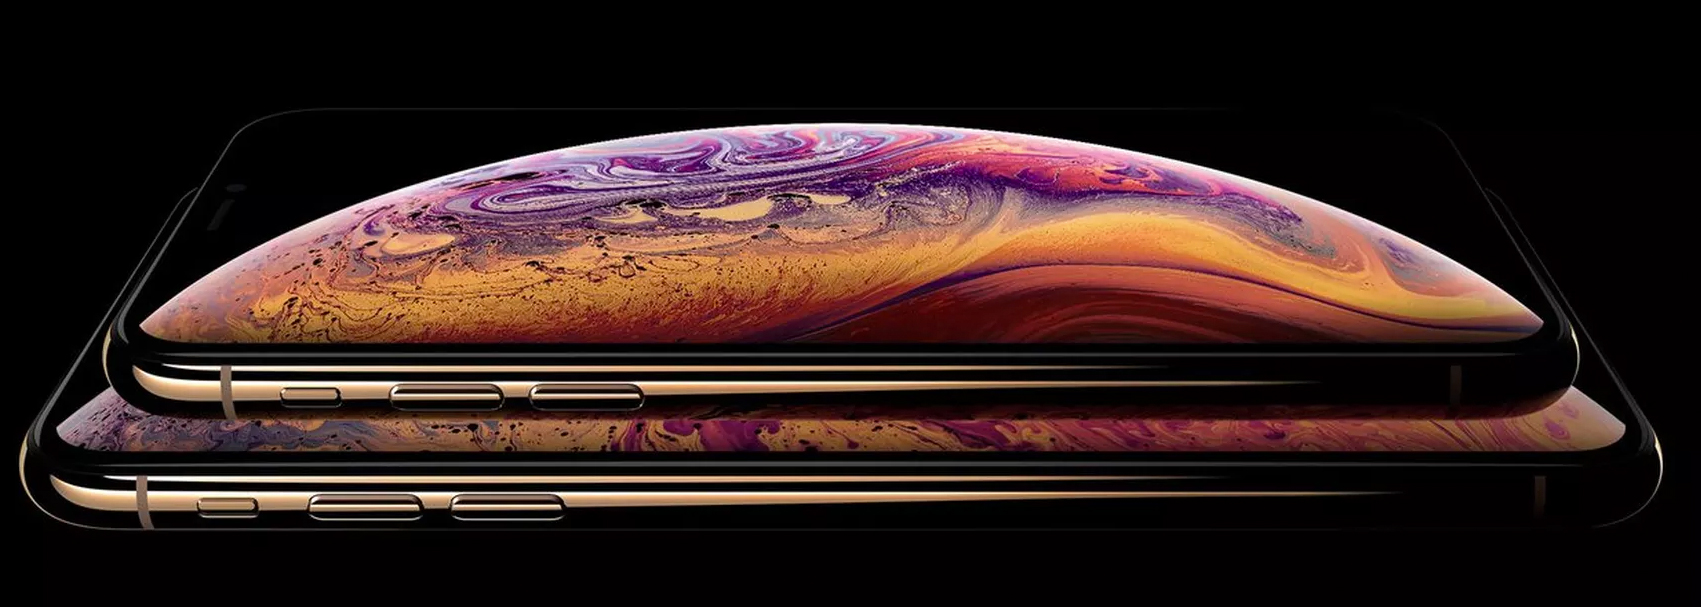 iPhone XS y XS Max en color dorado